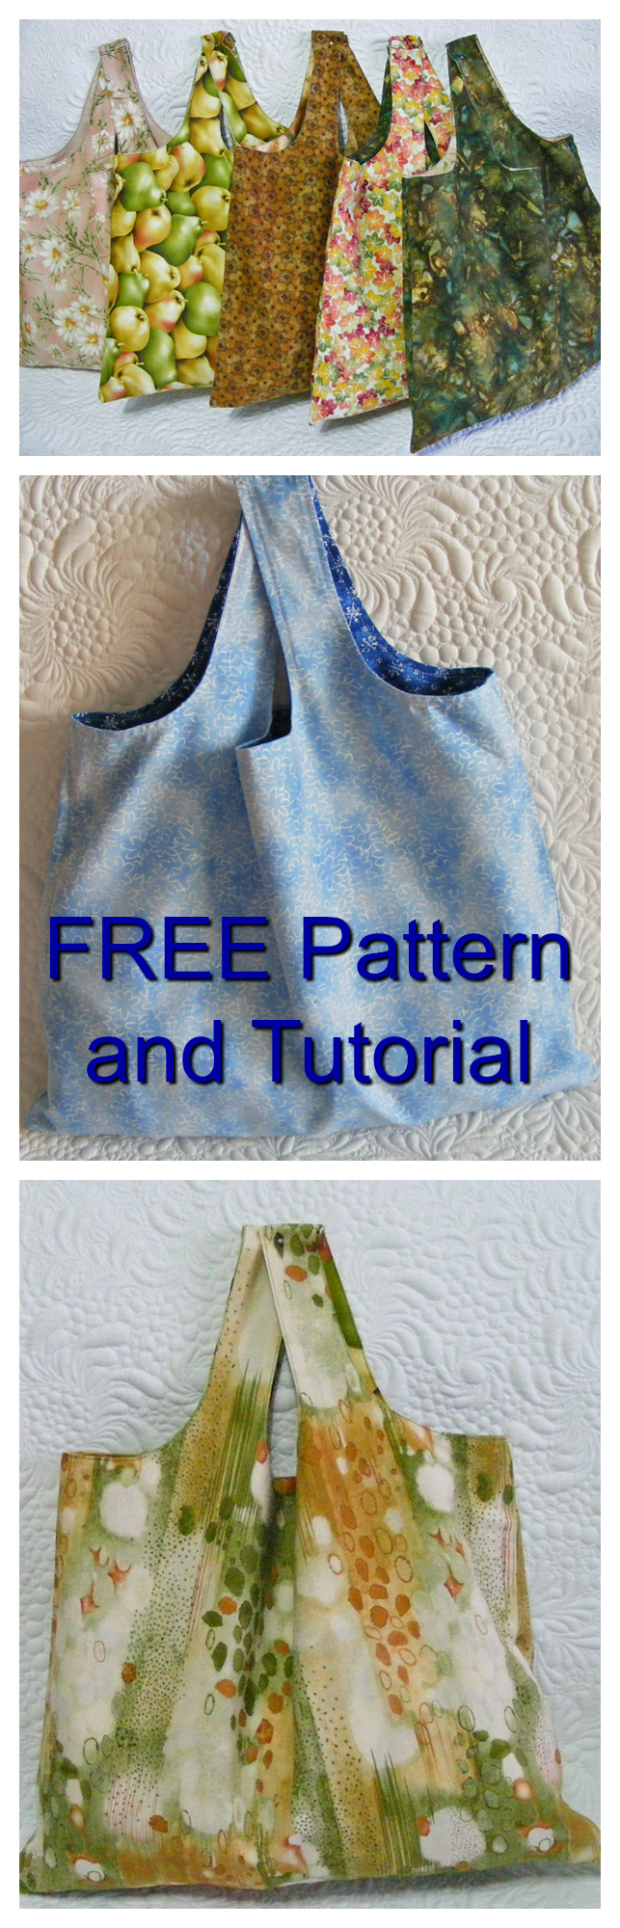 Here is a quick and easy project for a beginner sewer. You can make the Reversible Shopping Bag using the FREE pattern and tutorial. These bags are much stronger than the plastic bags you are given at the supermarkets and by using these bags you get to do your little bit towards saving the planet.